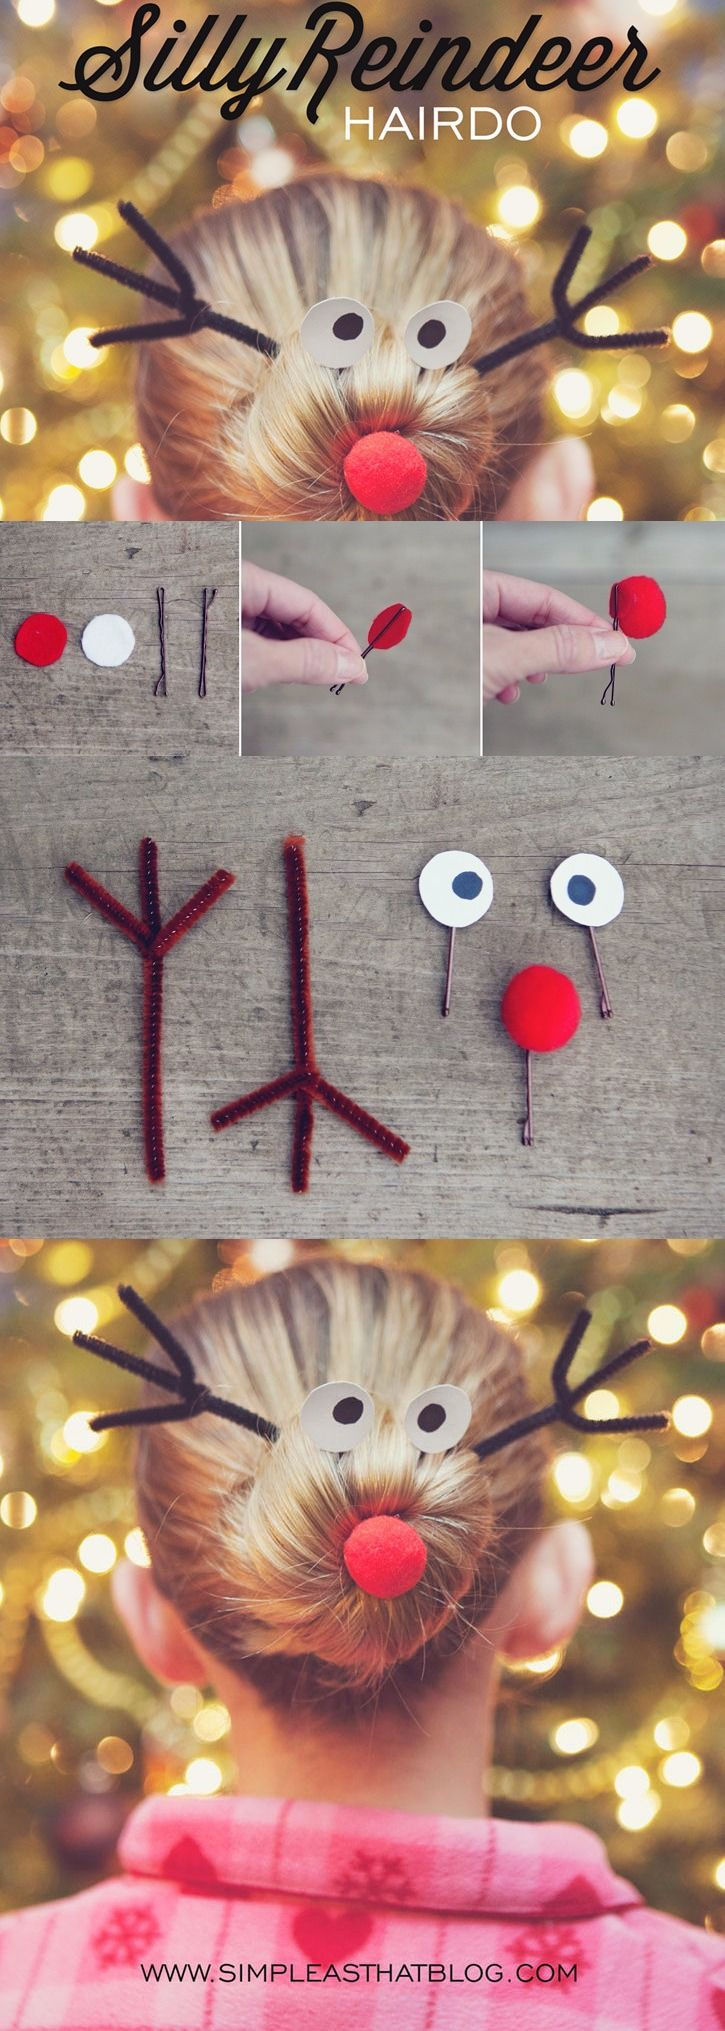 DIY Silly Reindeer Hairstyle Pictures Photos and Images